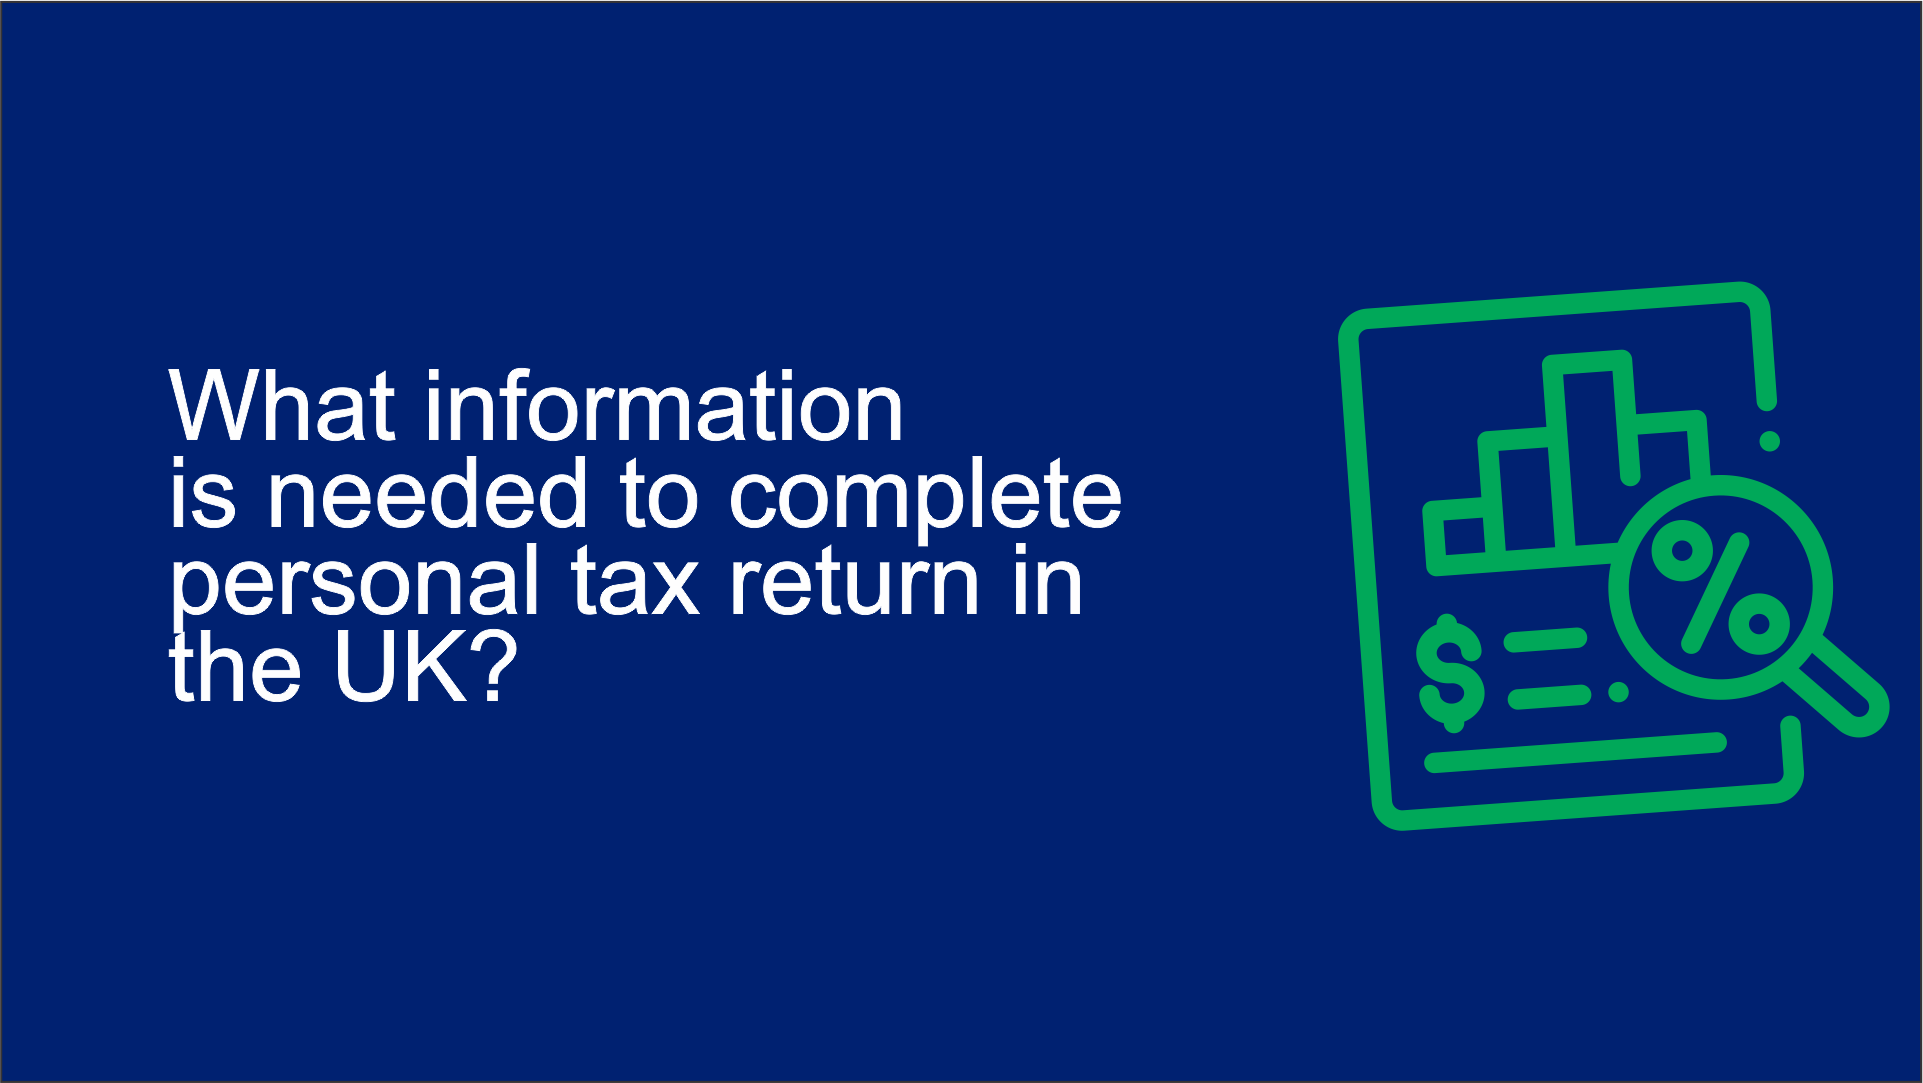 What information is needed to complete personal tax return in the UK